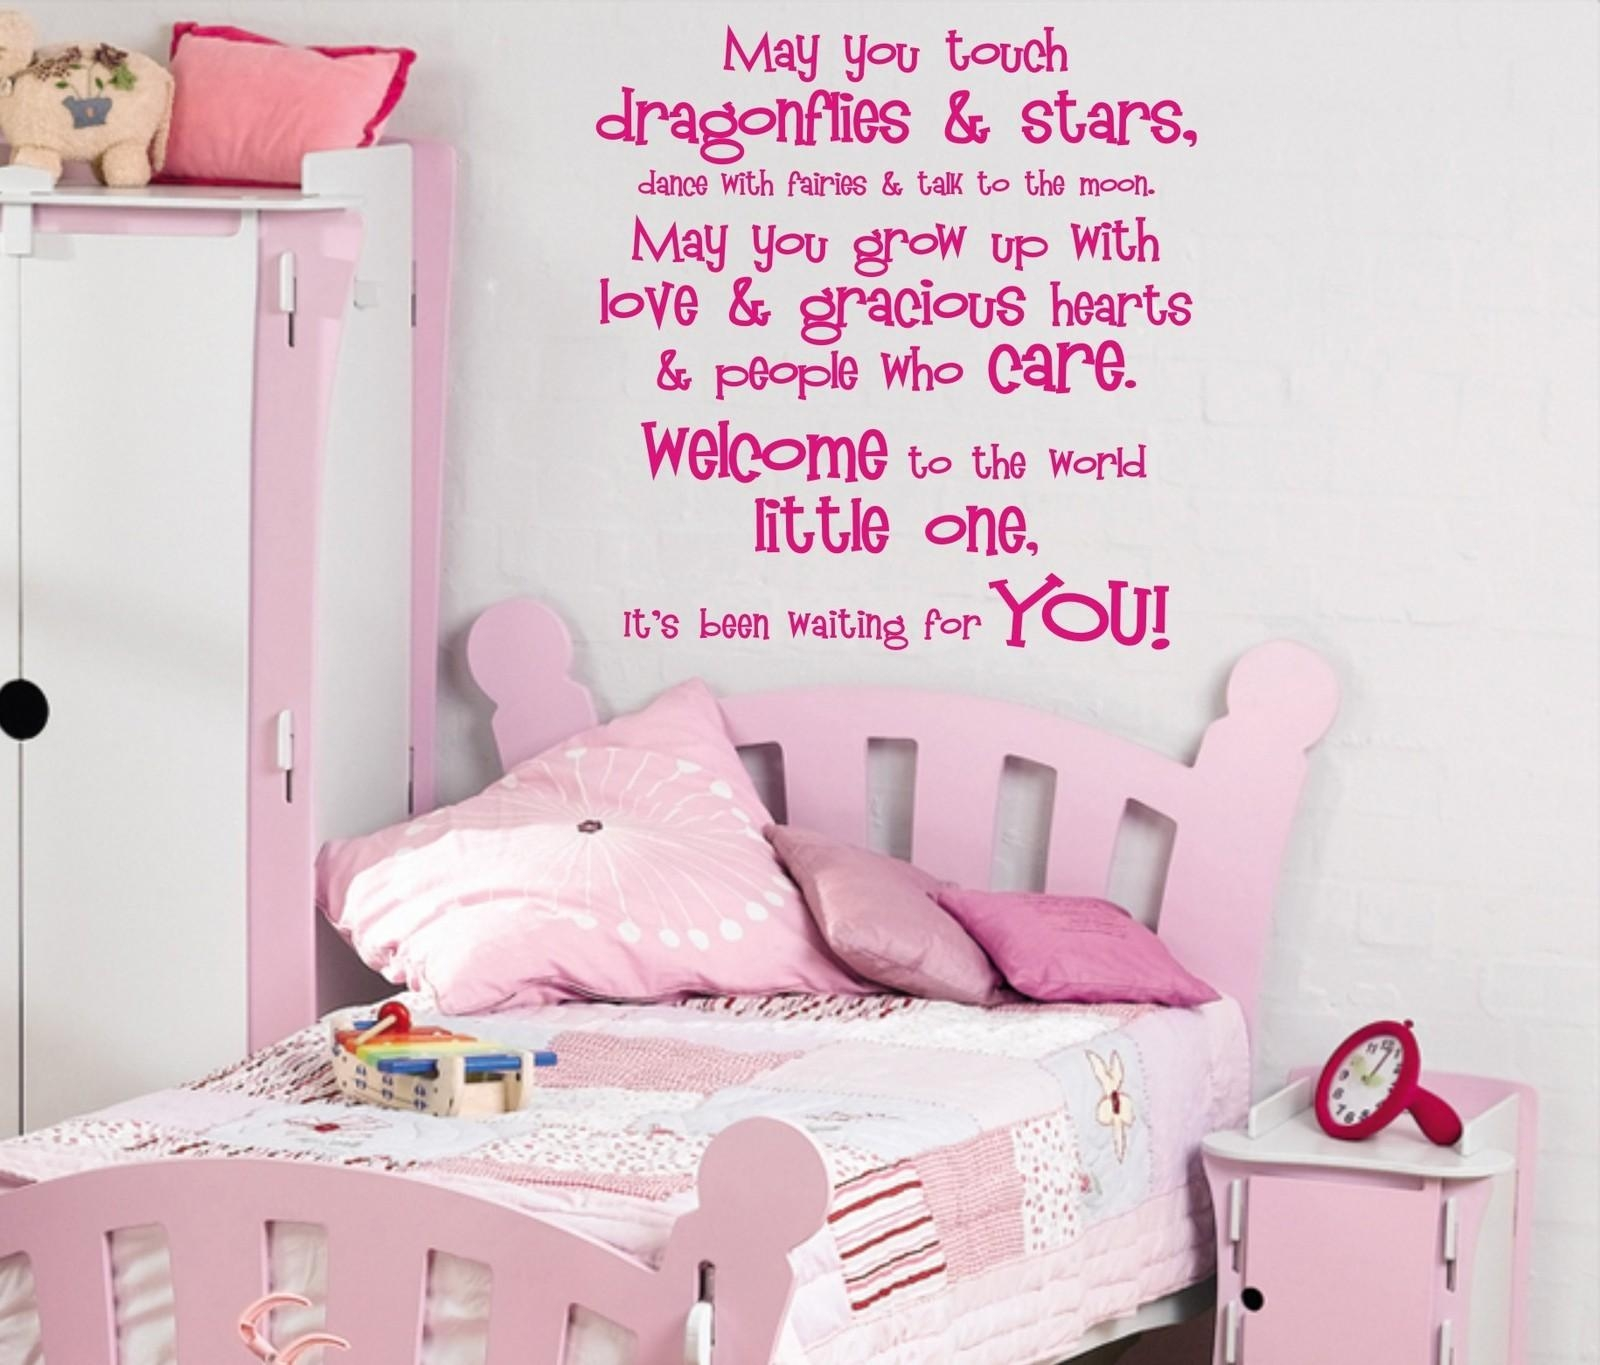 Bedroom : Dazzling Storage Teenagers Of Stairs Boy Desk And Couch Within Wall Art For Little Girl Room (View 4 of 20)